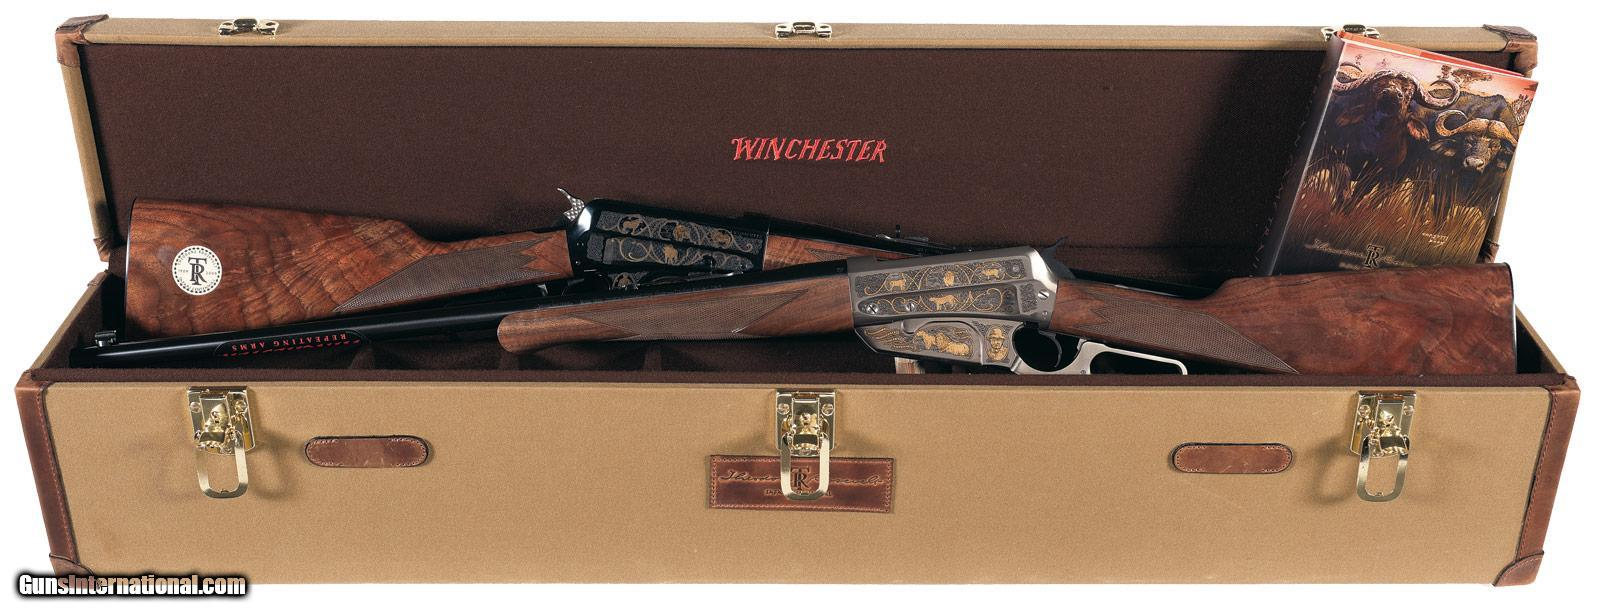 Teddy roosevelt guns to be displayed at nra national - Teddy Roosevelt Guns To Be Displayed At Nra National 46